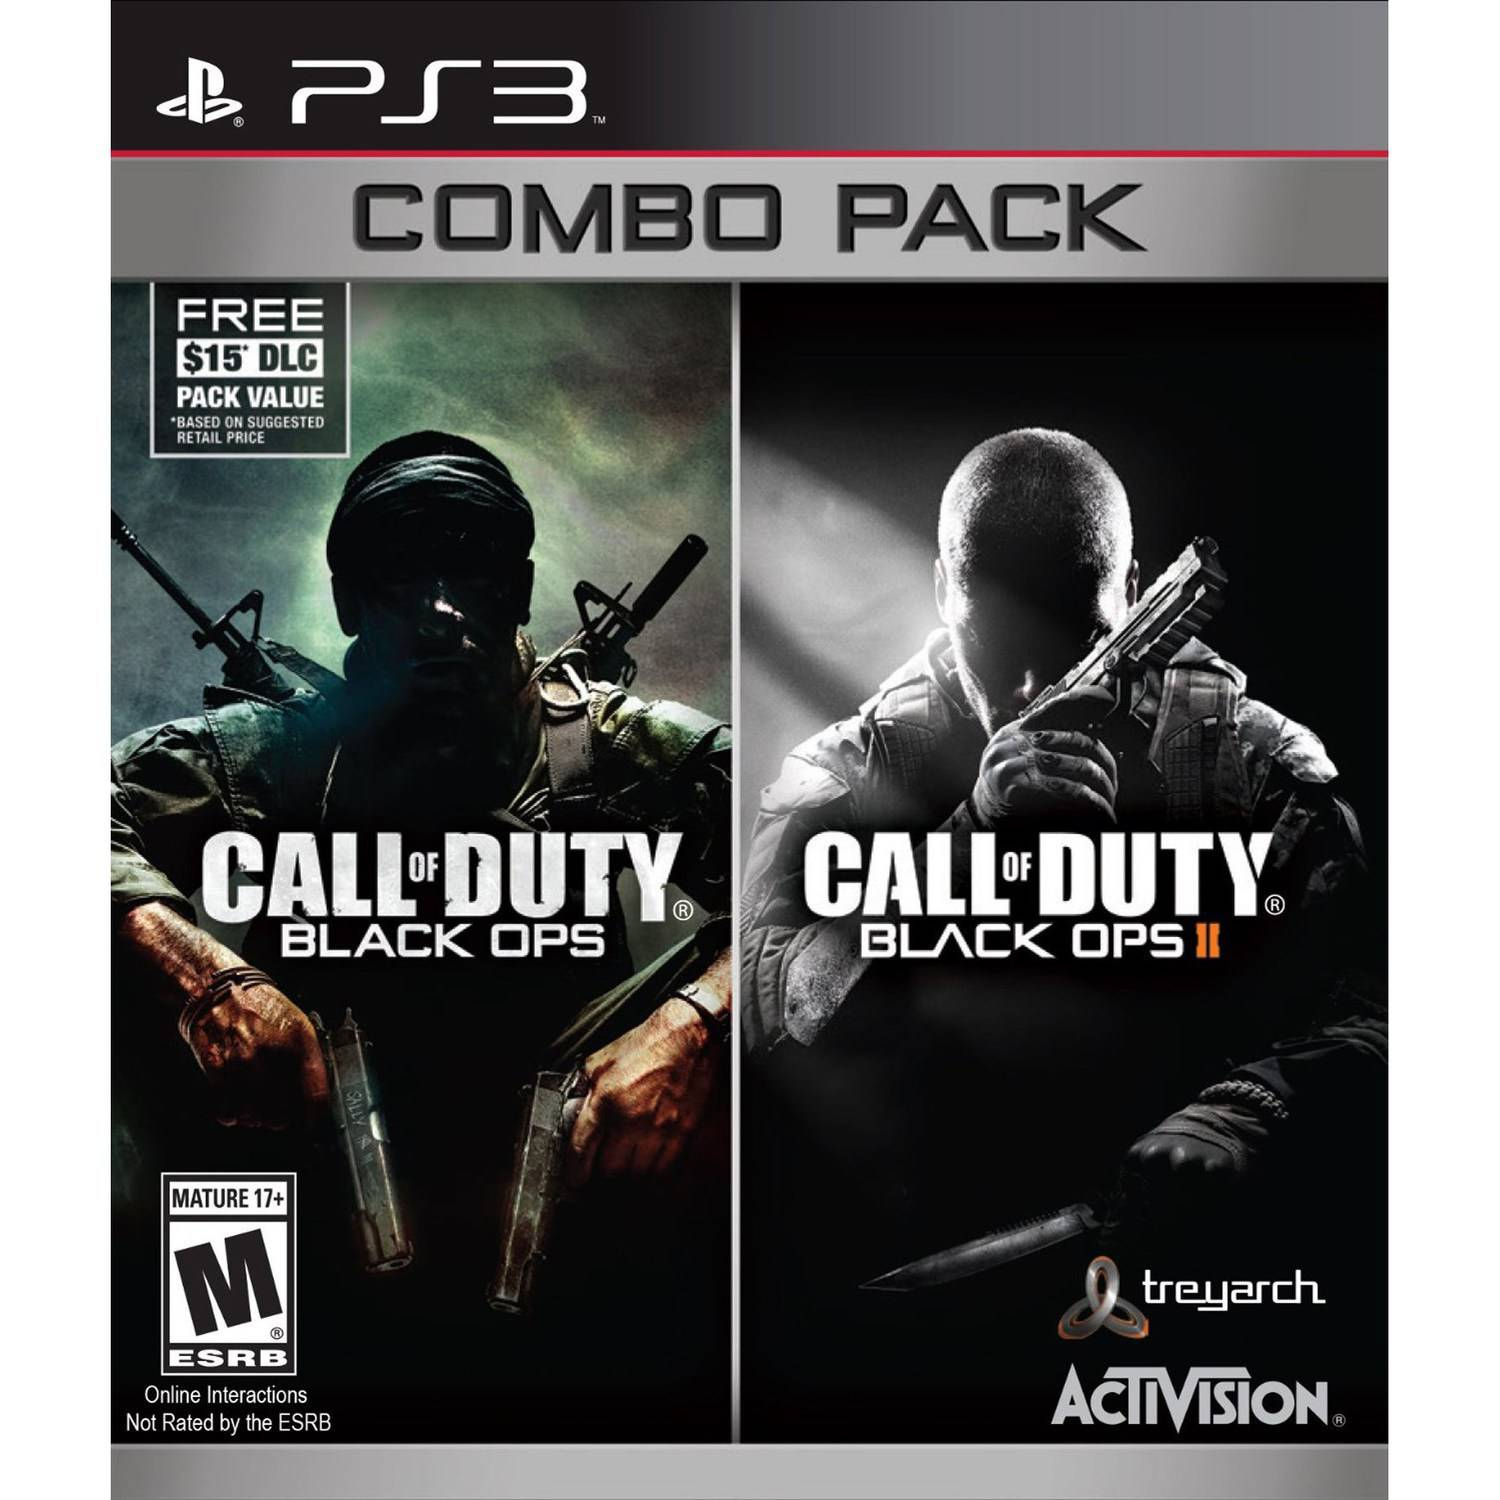 Call of Duty: Black Ops & Black Ops 2 w/ First Strike Map Pack, Activision, PlayStation 3, 047875874367